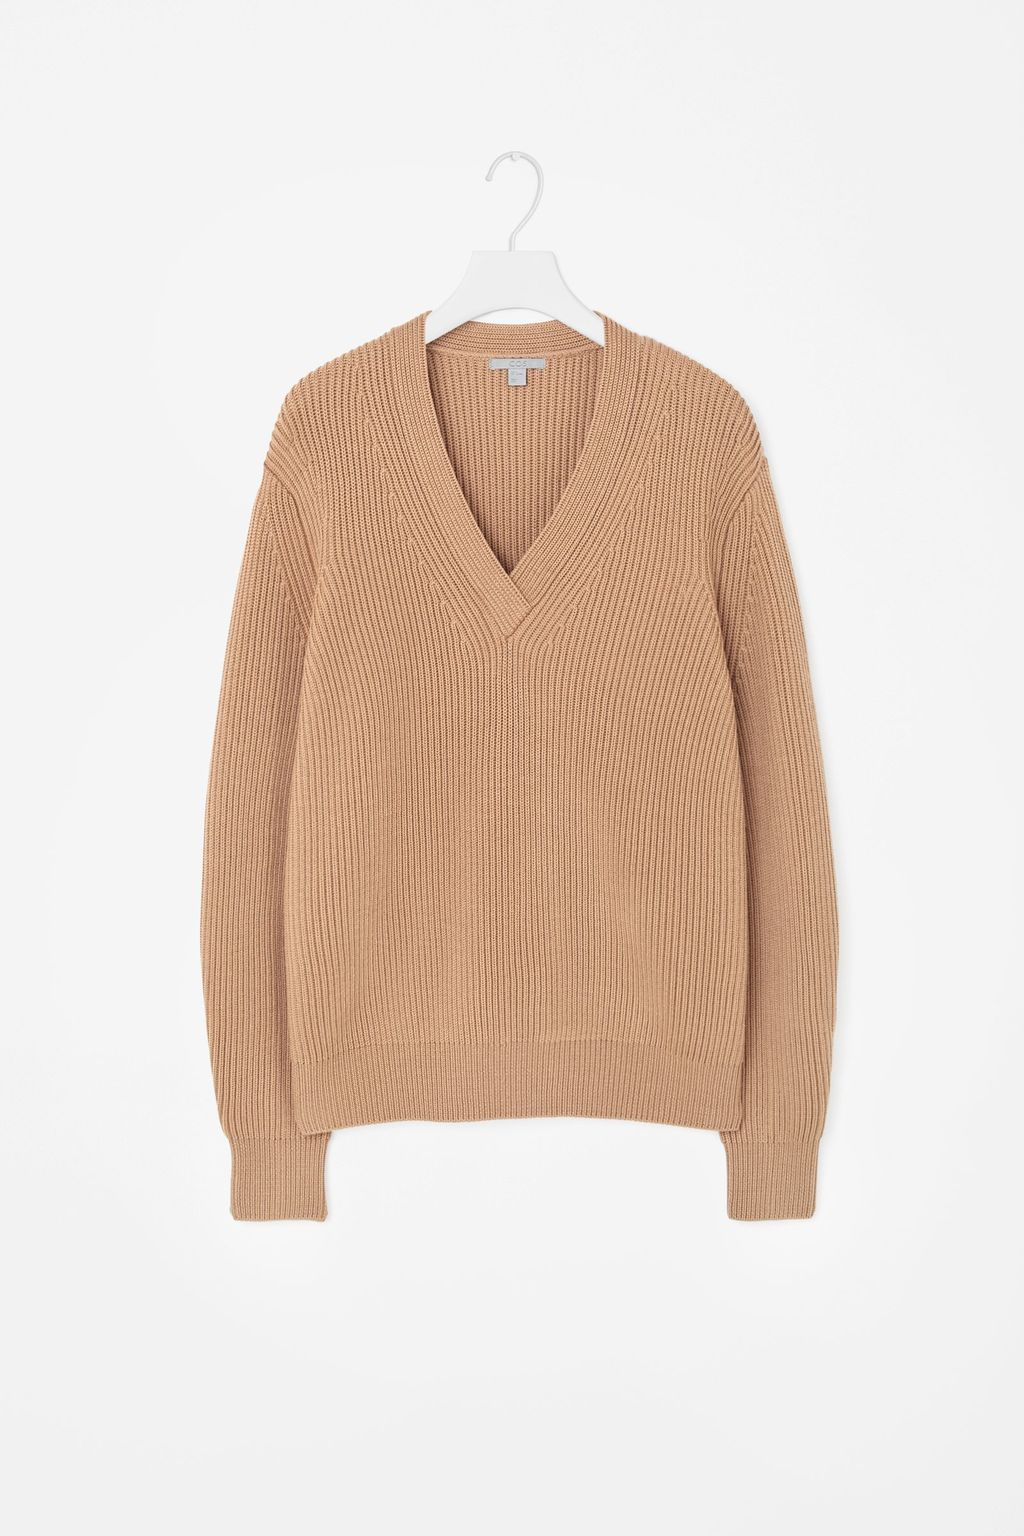 V Neck Ribbed Jumper - neckline: low v-neck; pattern: plain; length: below the bottom; style: standard; predominant colour: camel; occasions: casual, creative work; fibres: wool - 100%; fit: loose; sleeve length: long sleeve; sleeve style: standard; texture group: knits/crochet; pattern type: knitted - other; season: a/w 2015; wardrobe: basic